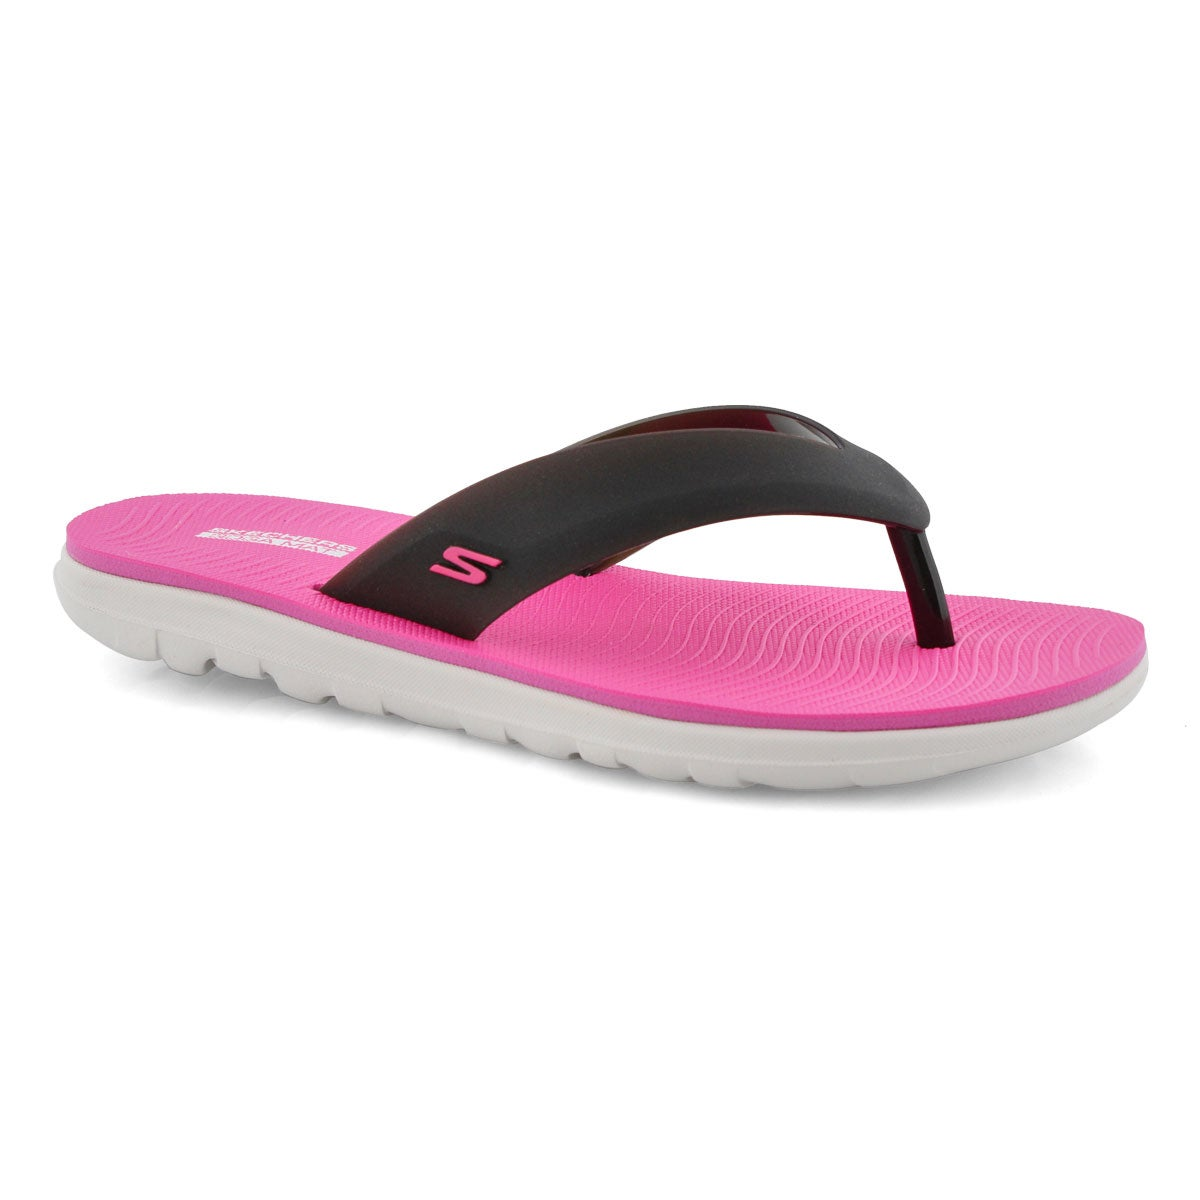 Tongs NEXTWAVE ULTRA TOPICZ noir/rose fluo, femmes